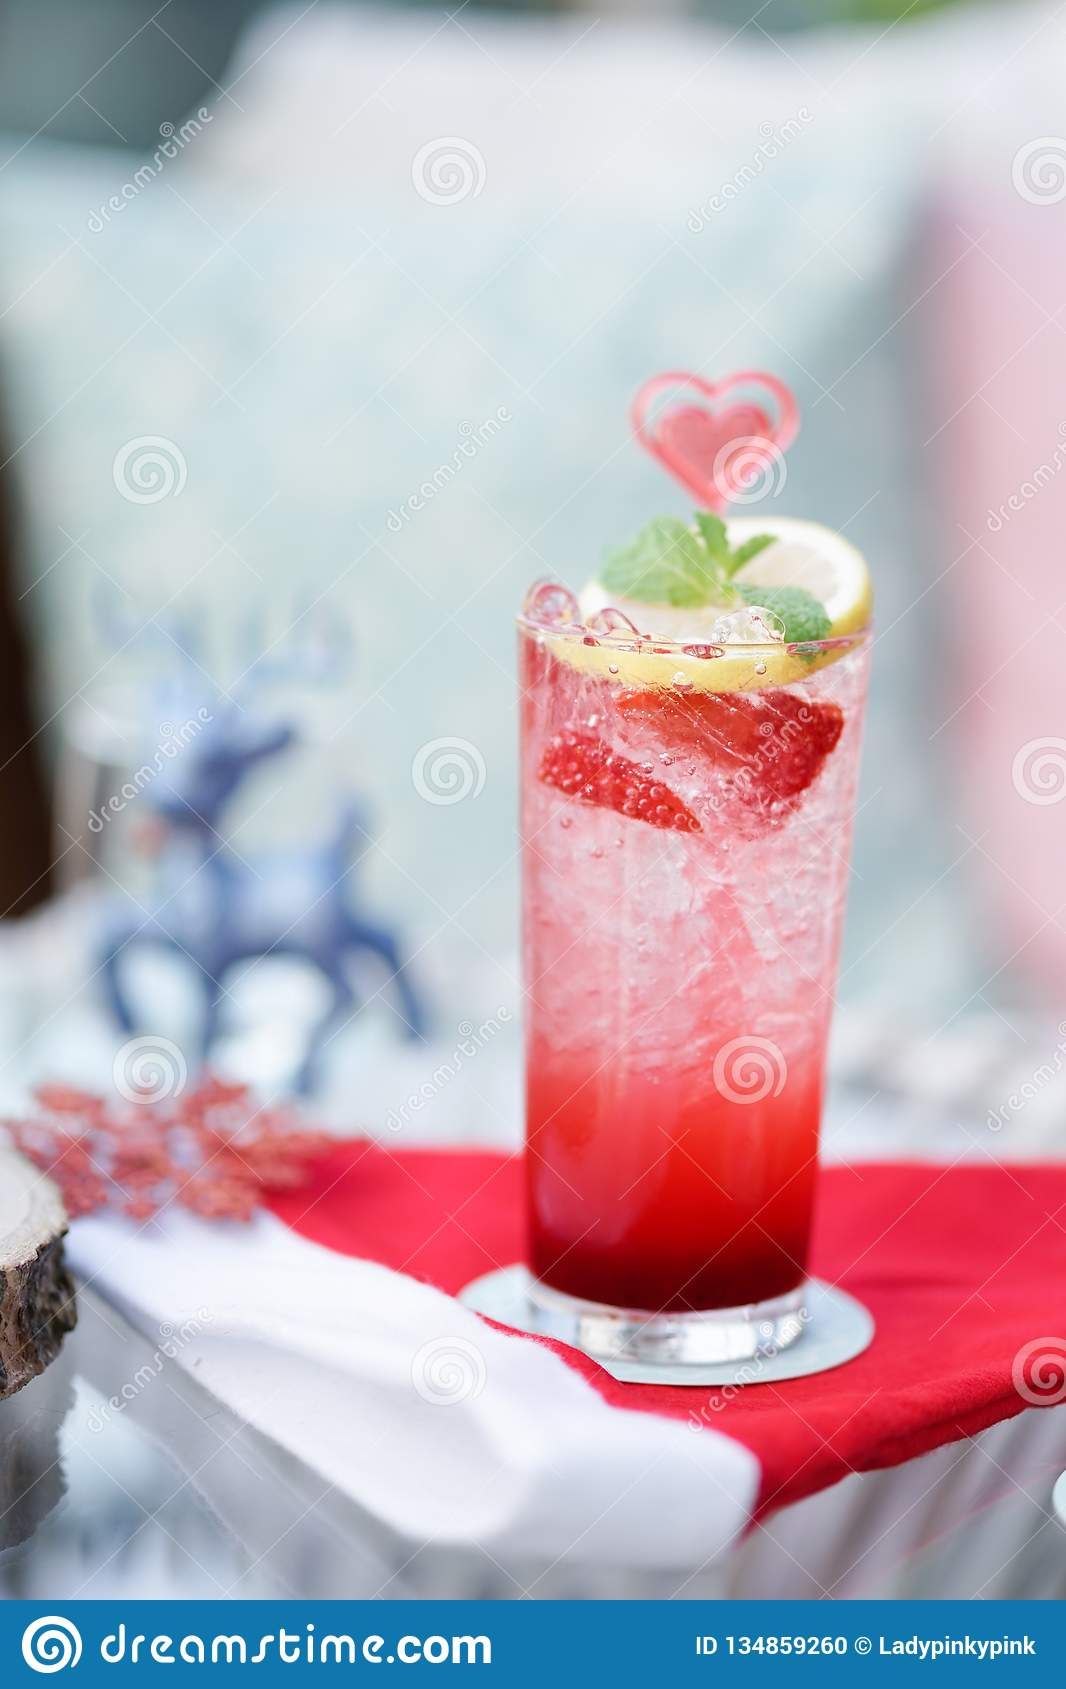 Christmas soda. Festive drink of a Christmas soda, seasonal drink served in December month only